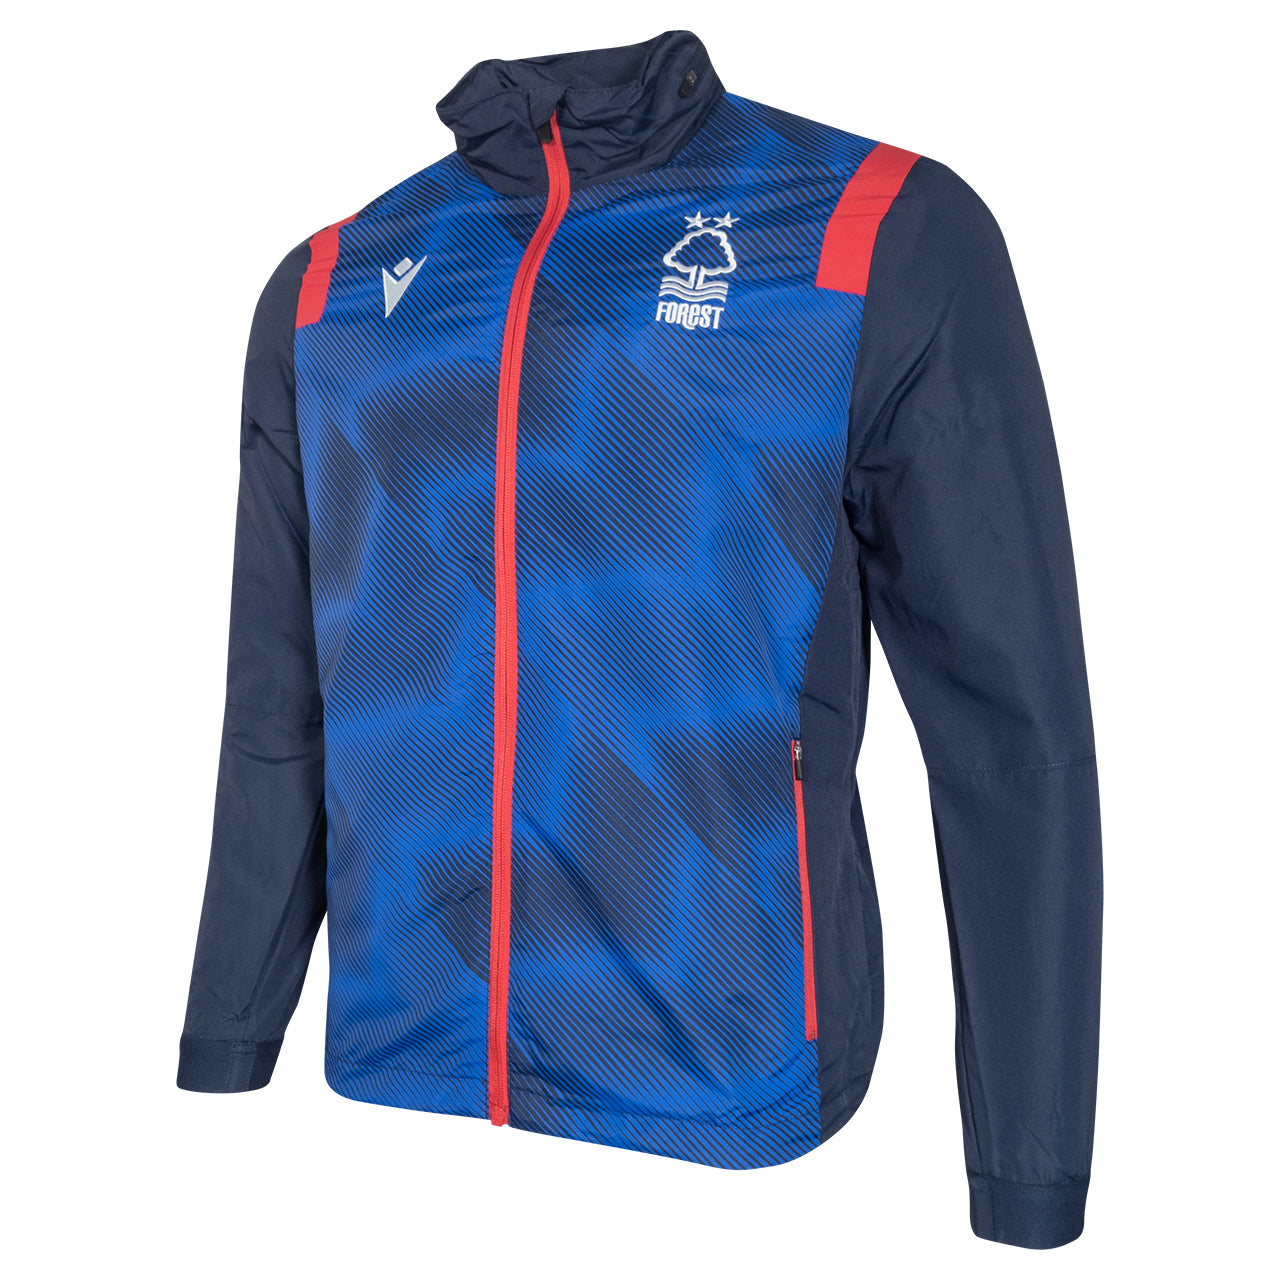 NFFC Junior Staff Training Shower Jacket 2020/21